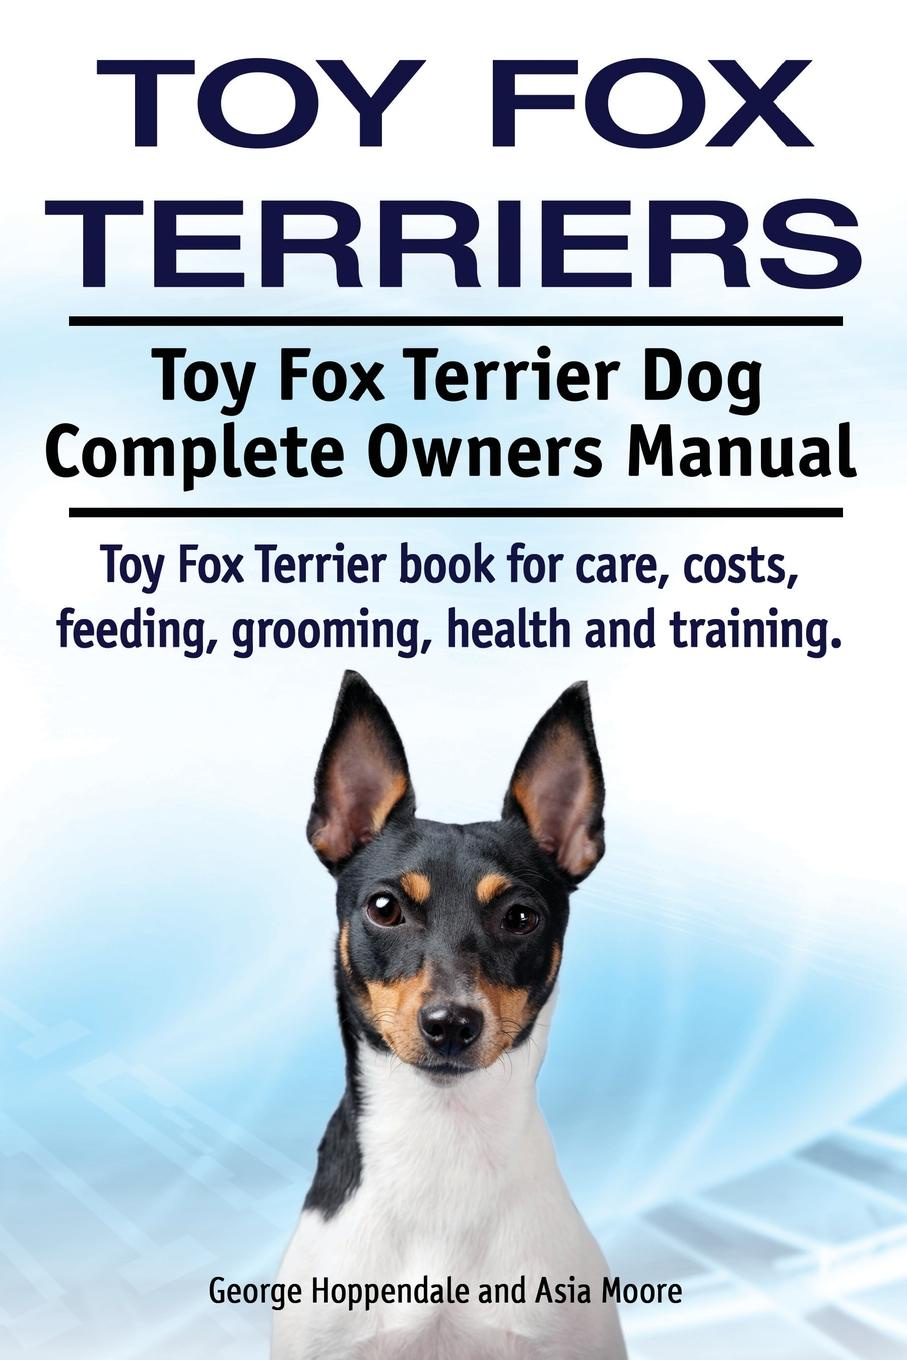 George Hoppendale, Asia Moore Toy Fox Terriers. Toy Fox Terrier Dog Complete Owners Manual. Toy Fox Terrier book for care, costs, feeding, grooming, health and training. mike fox money is everything